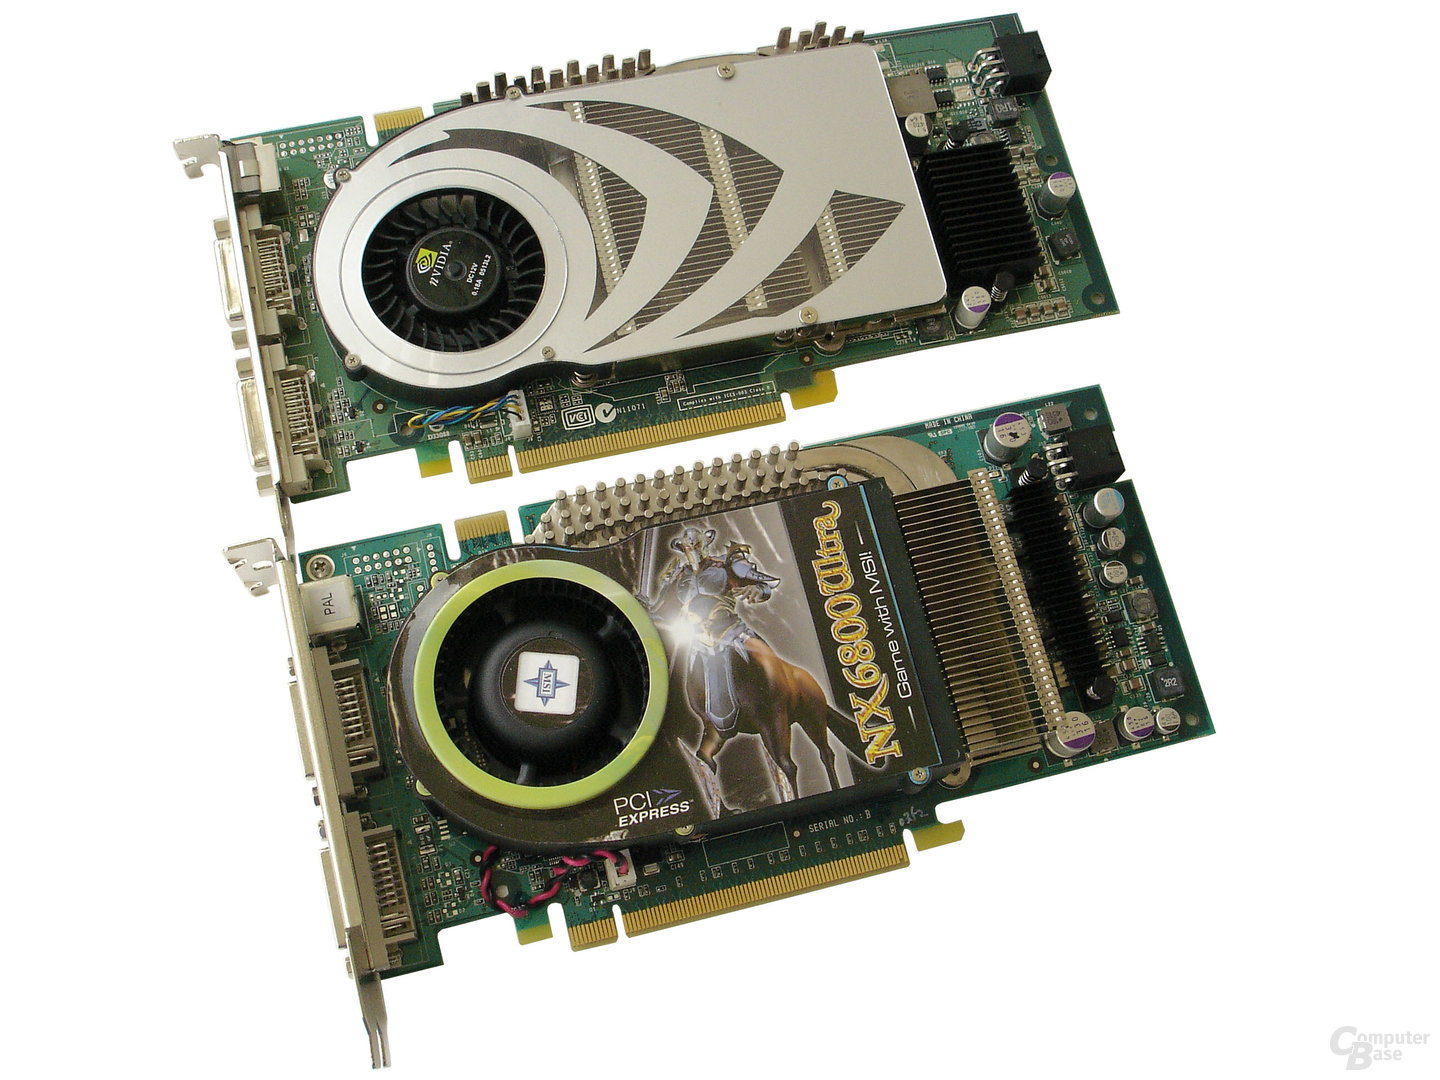 GeForce 7800 GTX vs. GeForce 6800 Ultra